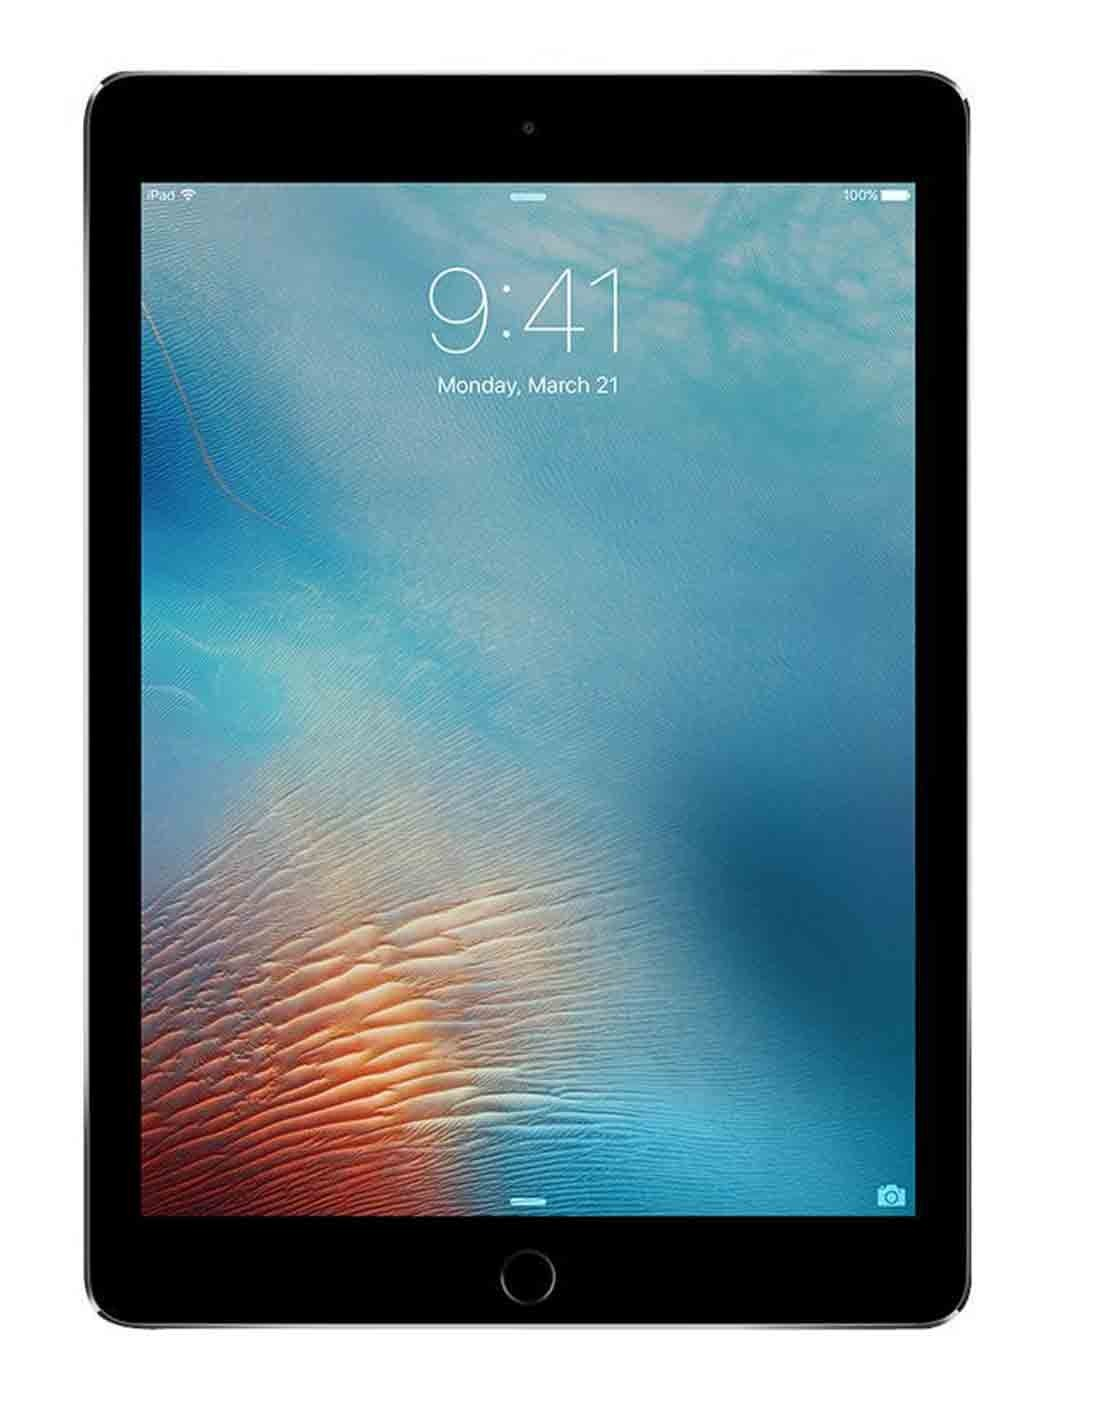 Apple iPad Air 2 Wi-Fi and Cellular 128GB Space Gray MGWL2B/A at a Cheap price in Dubai